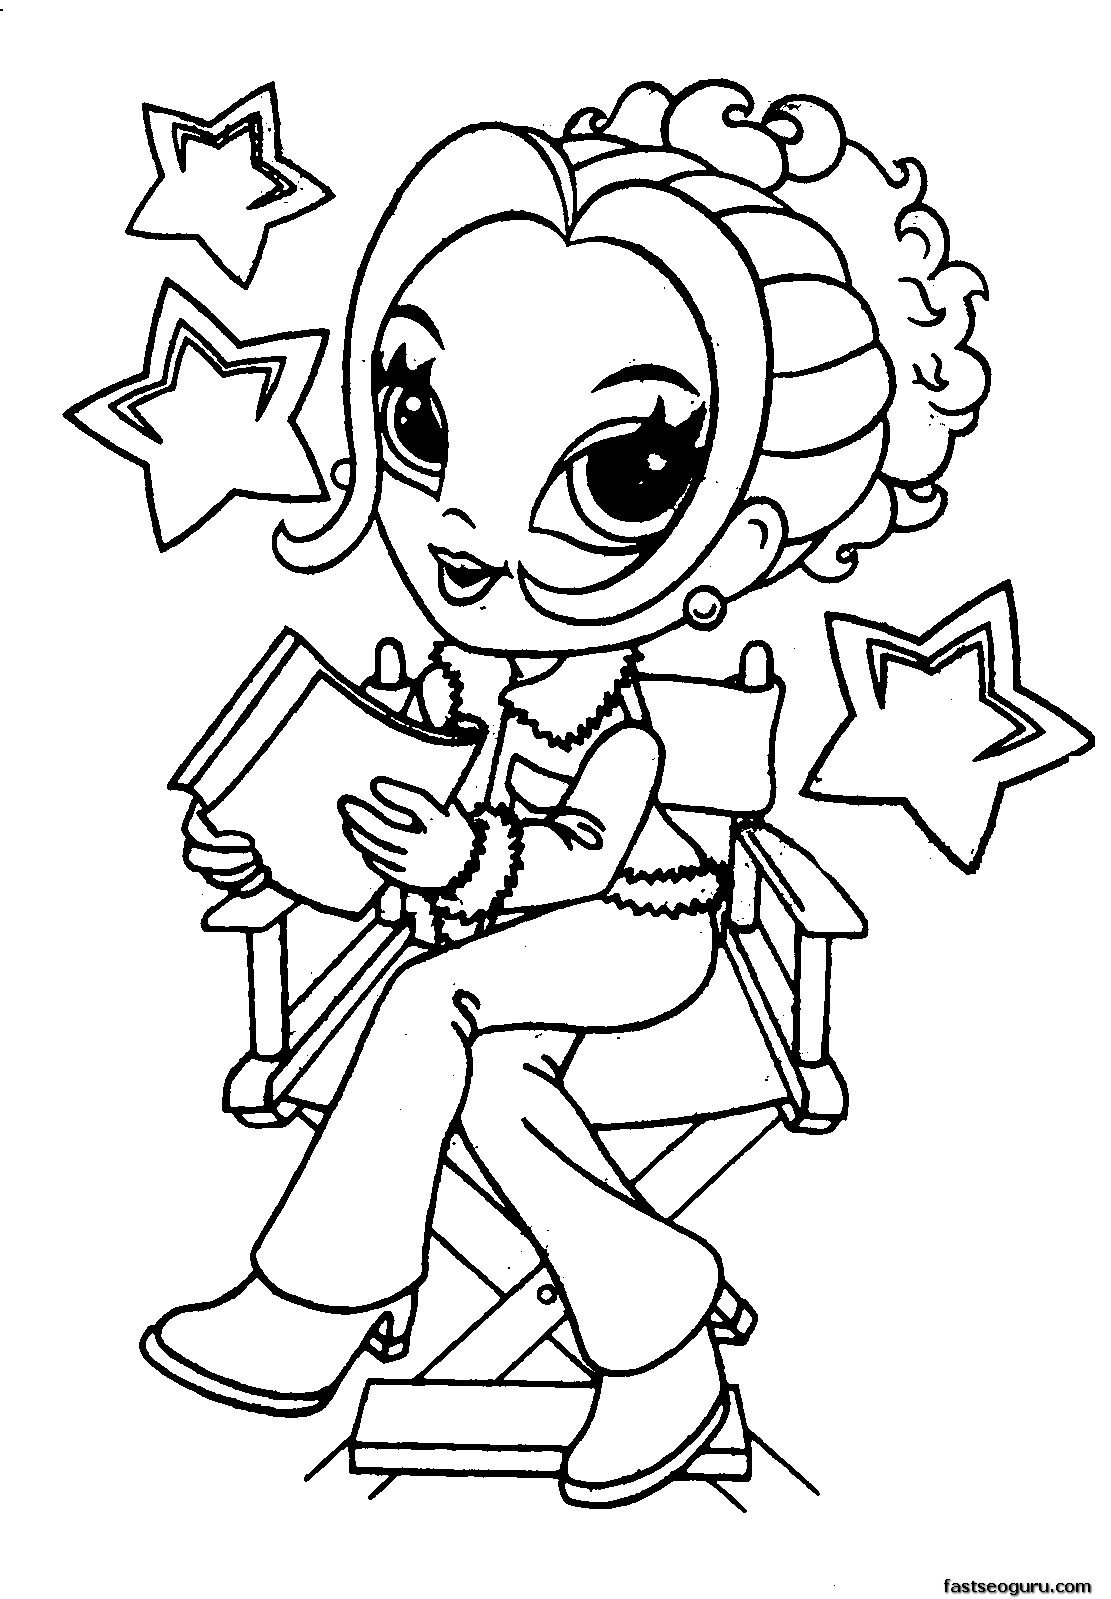 Printable Coloring Sheets For Girls  coloring pages for girls 10 and up